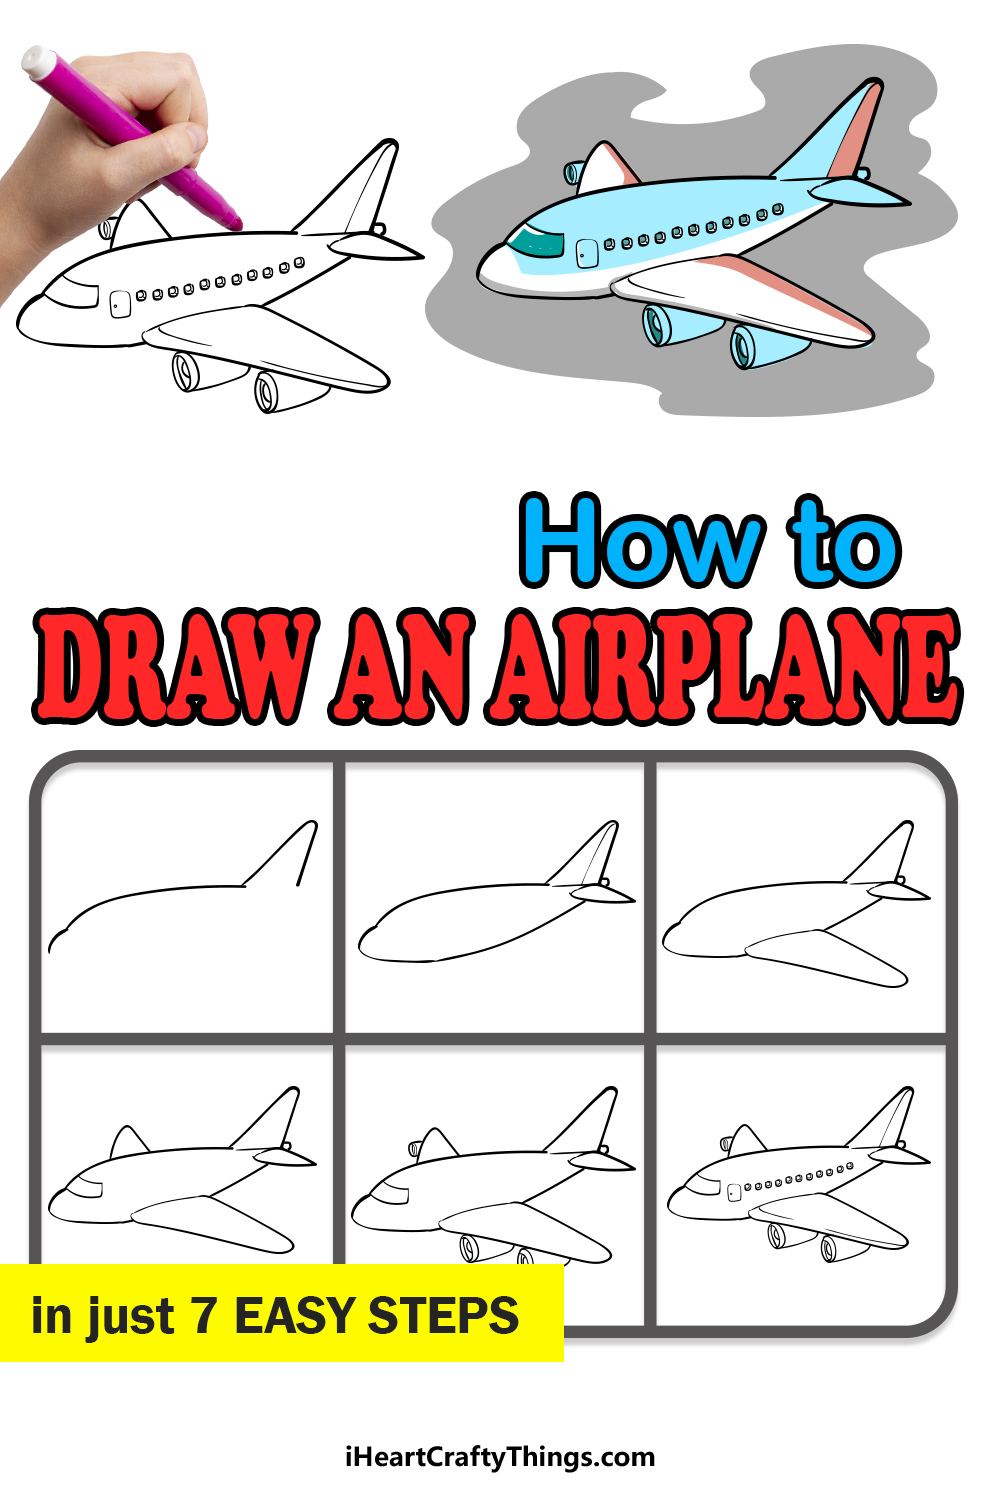 how to draw an airplane in 7 easy steps